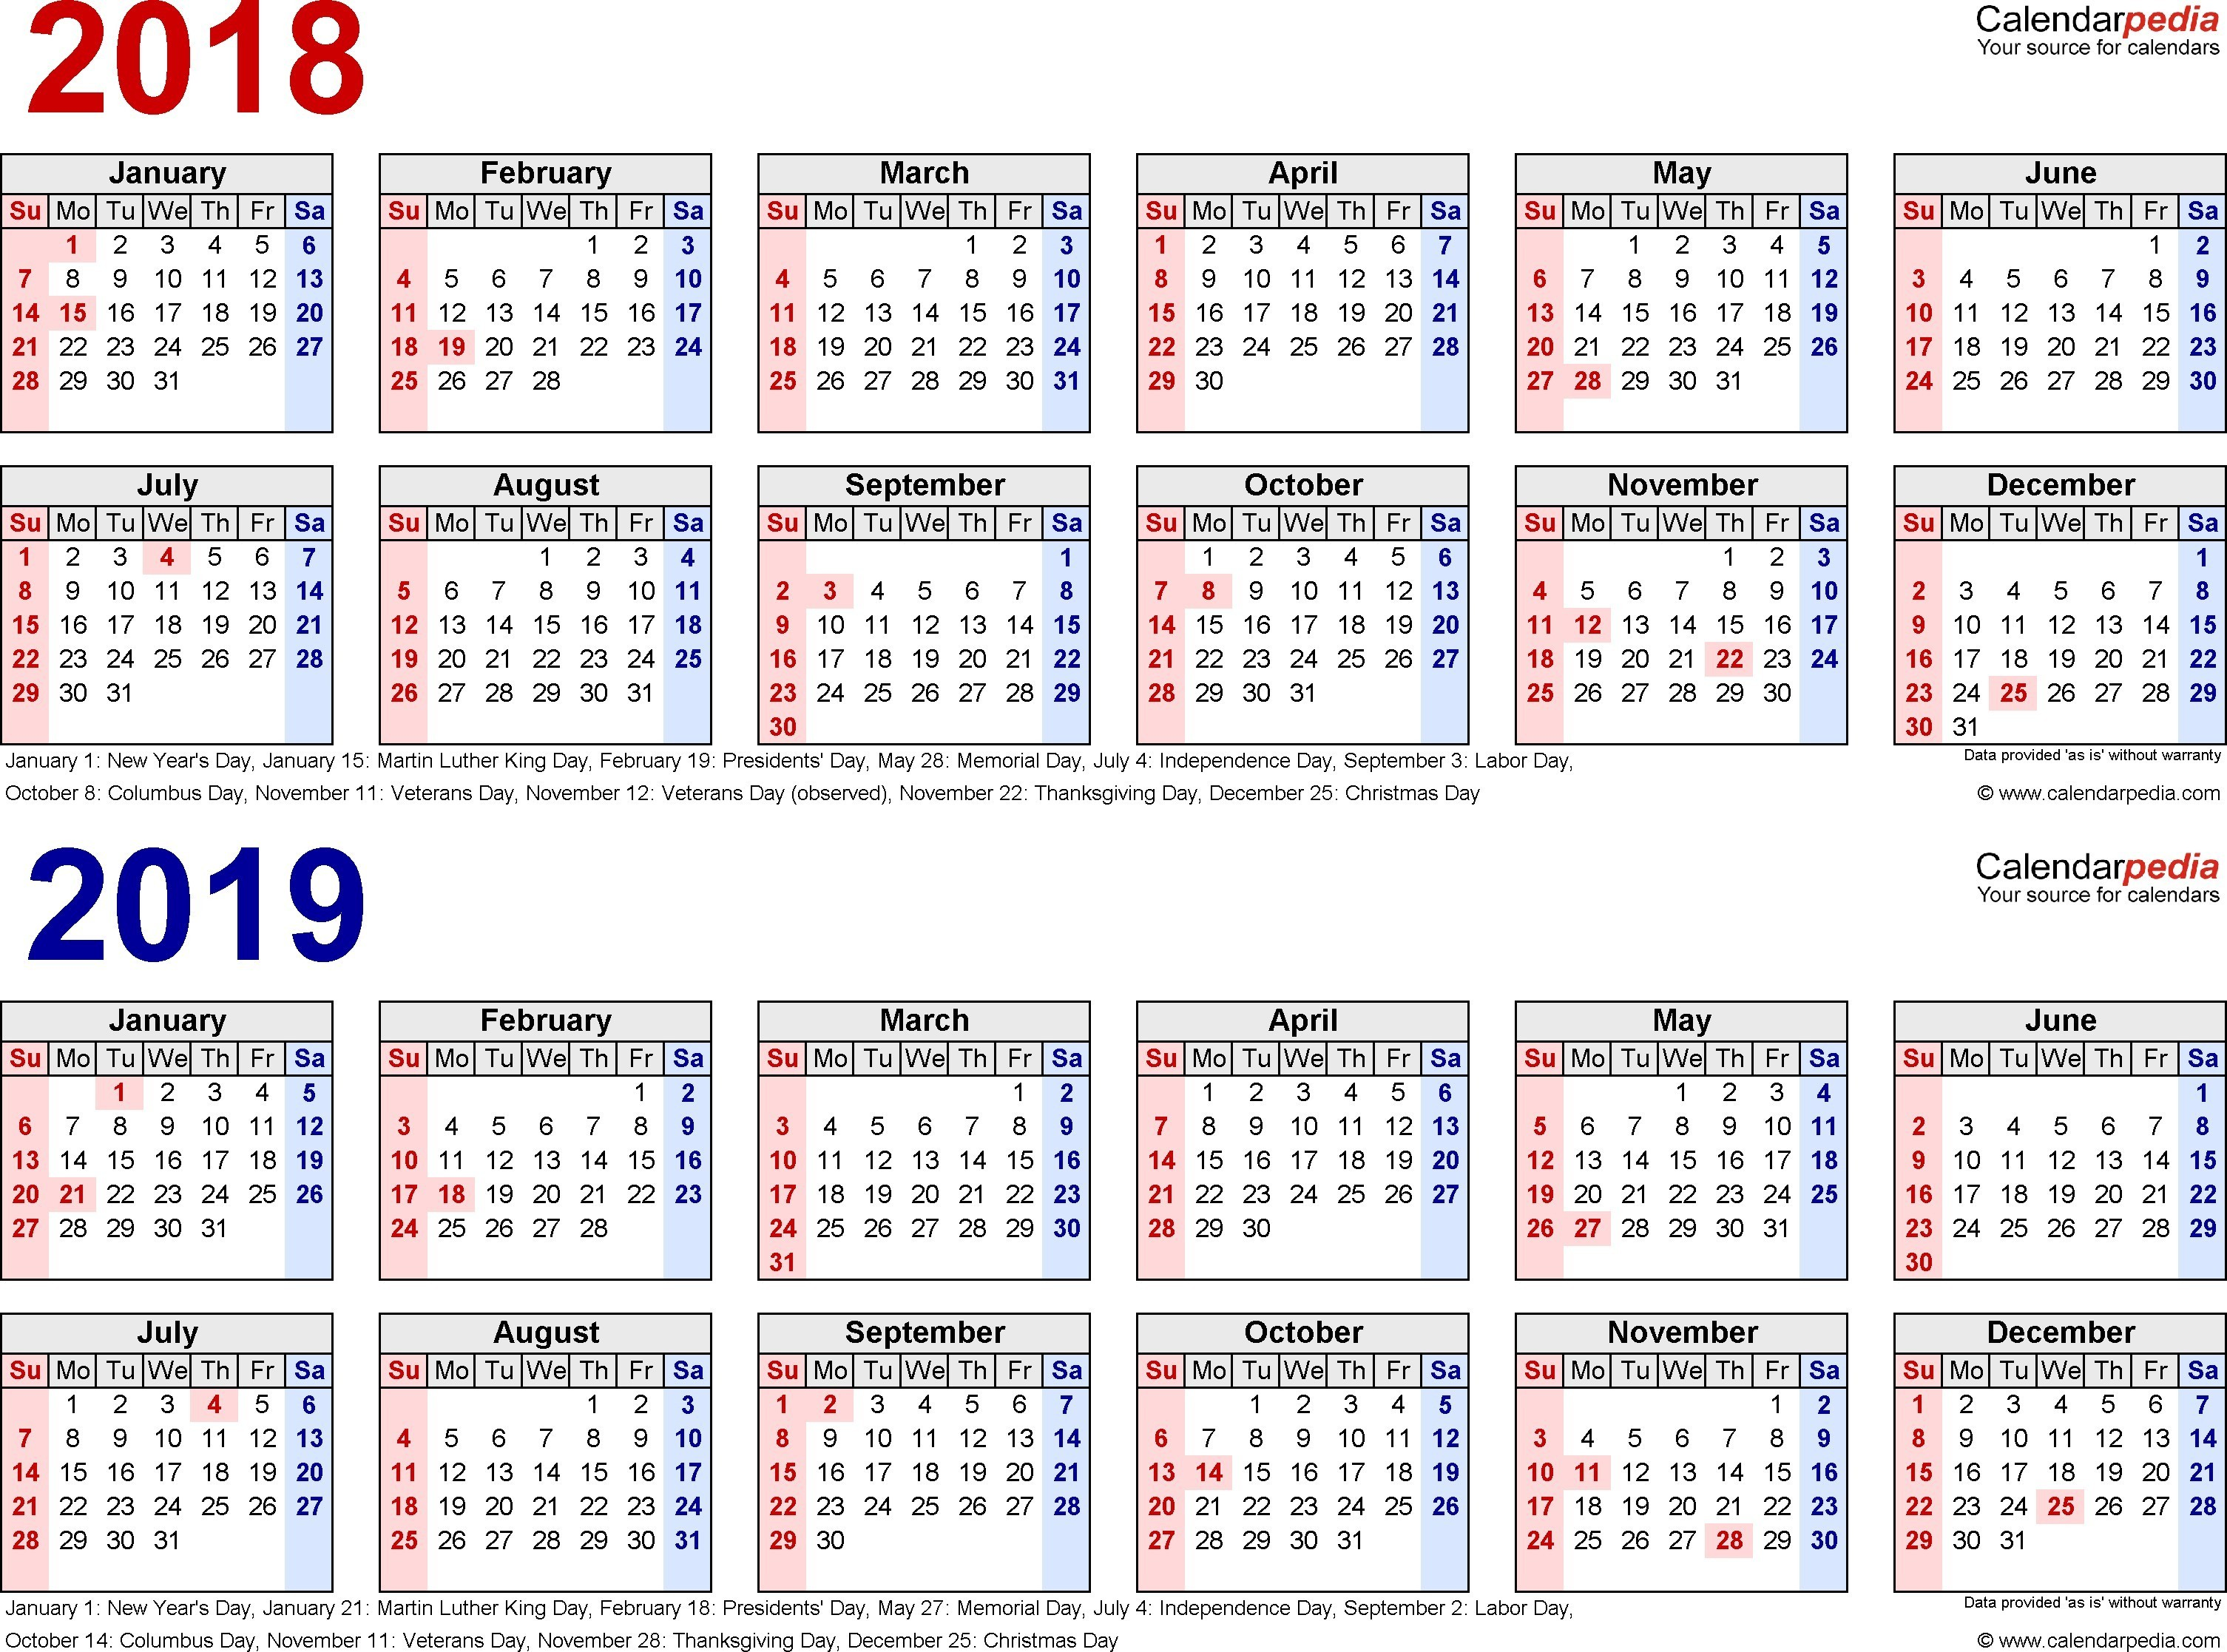 2019 March Calendar Kalnirnay Mejores Y Más Novedosos Tamil Calendar 2019 August 2019 Calendar with Holidays Printable Of 2019 March Calendar Kalnirnay Más Actual August 2106 Calendar Lara Expolicenciaslatam